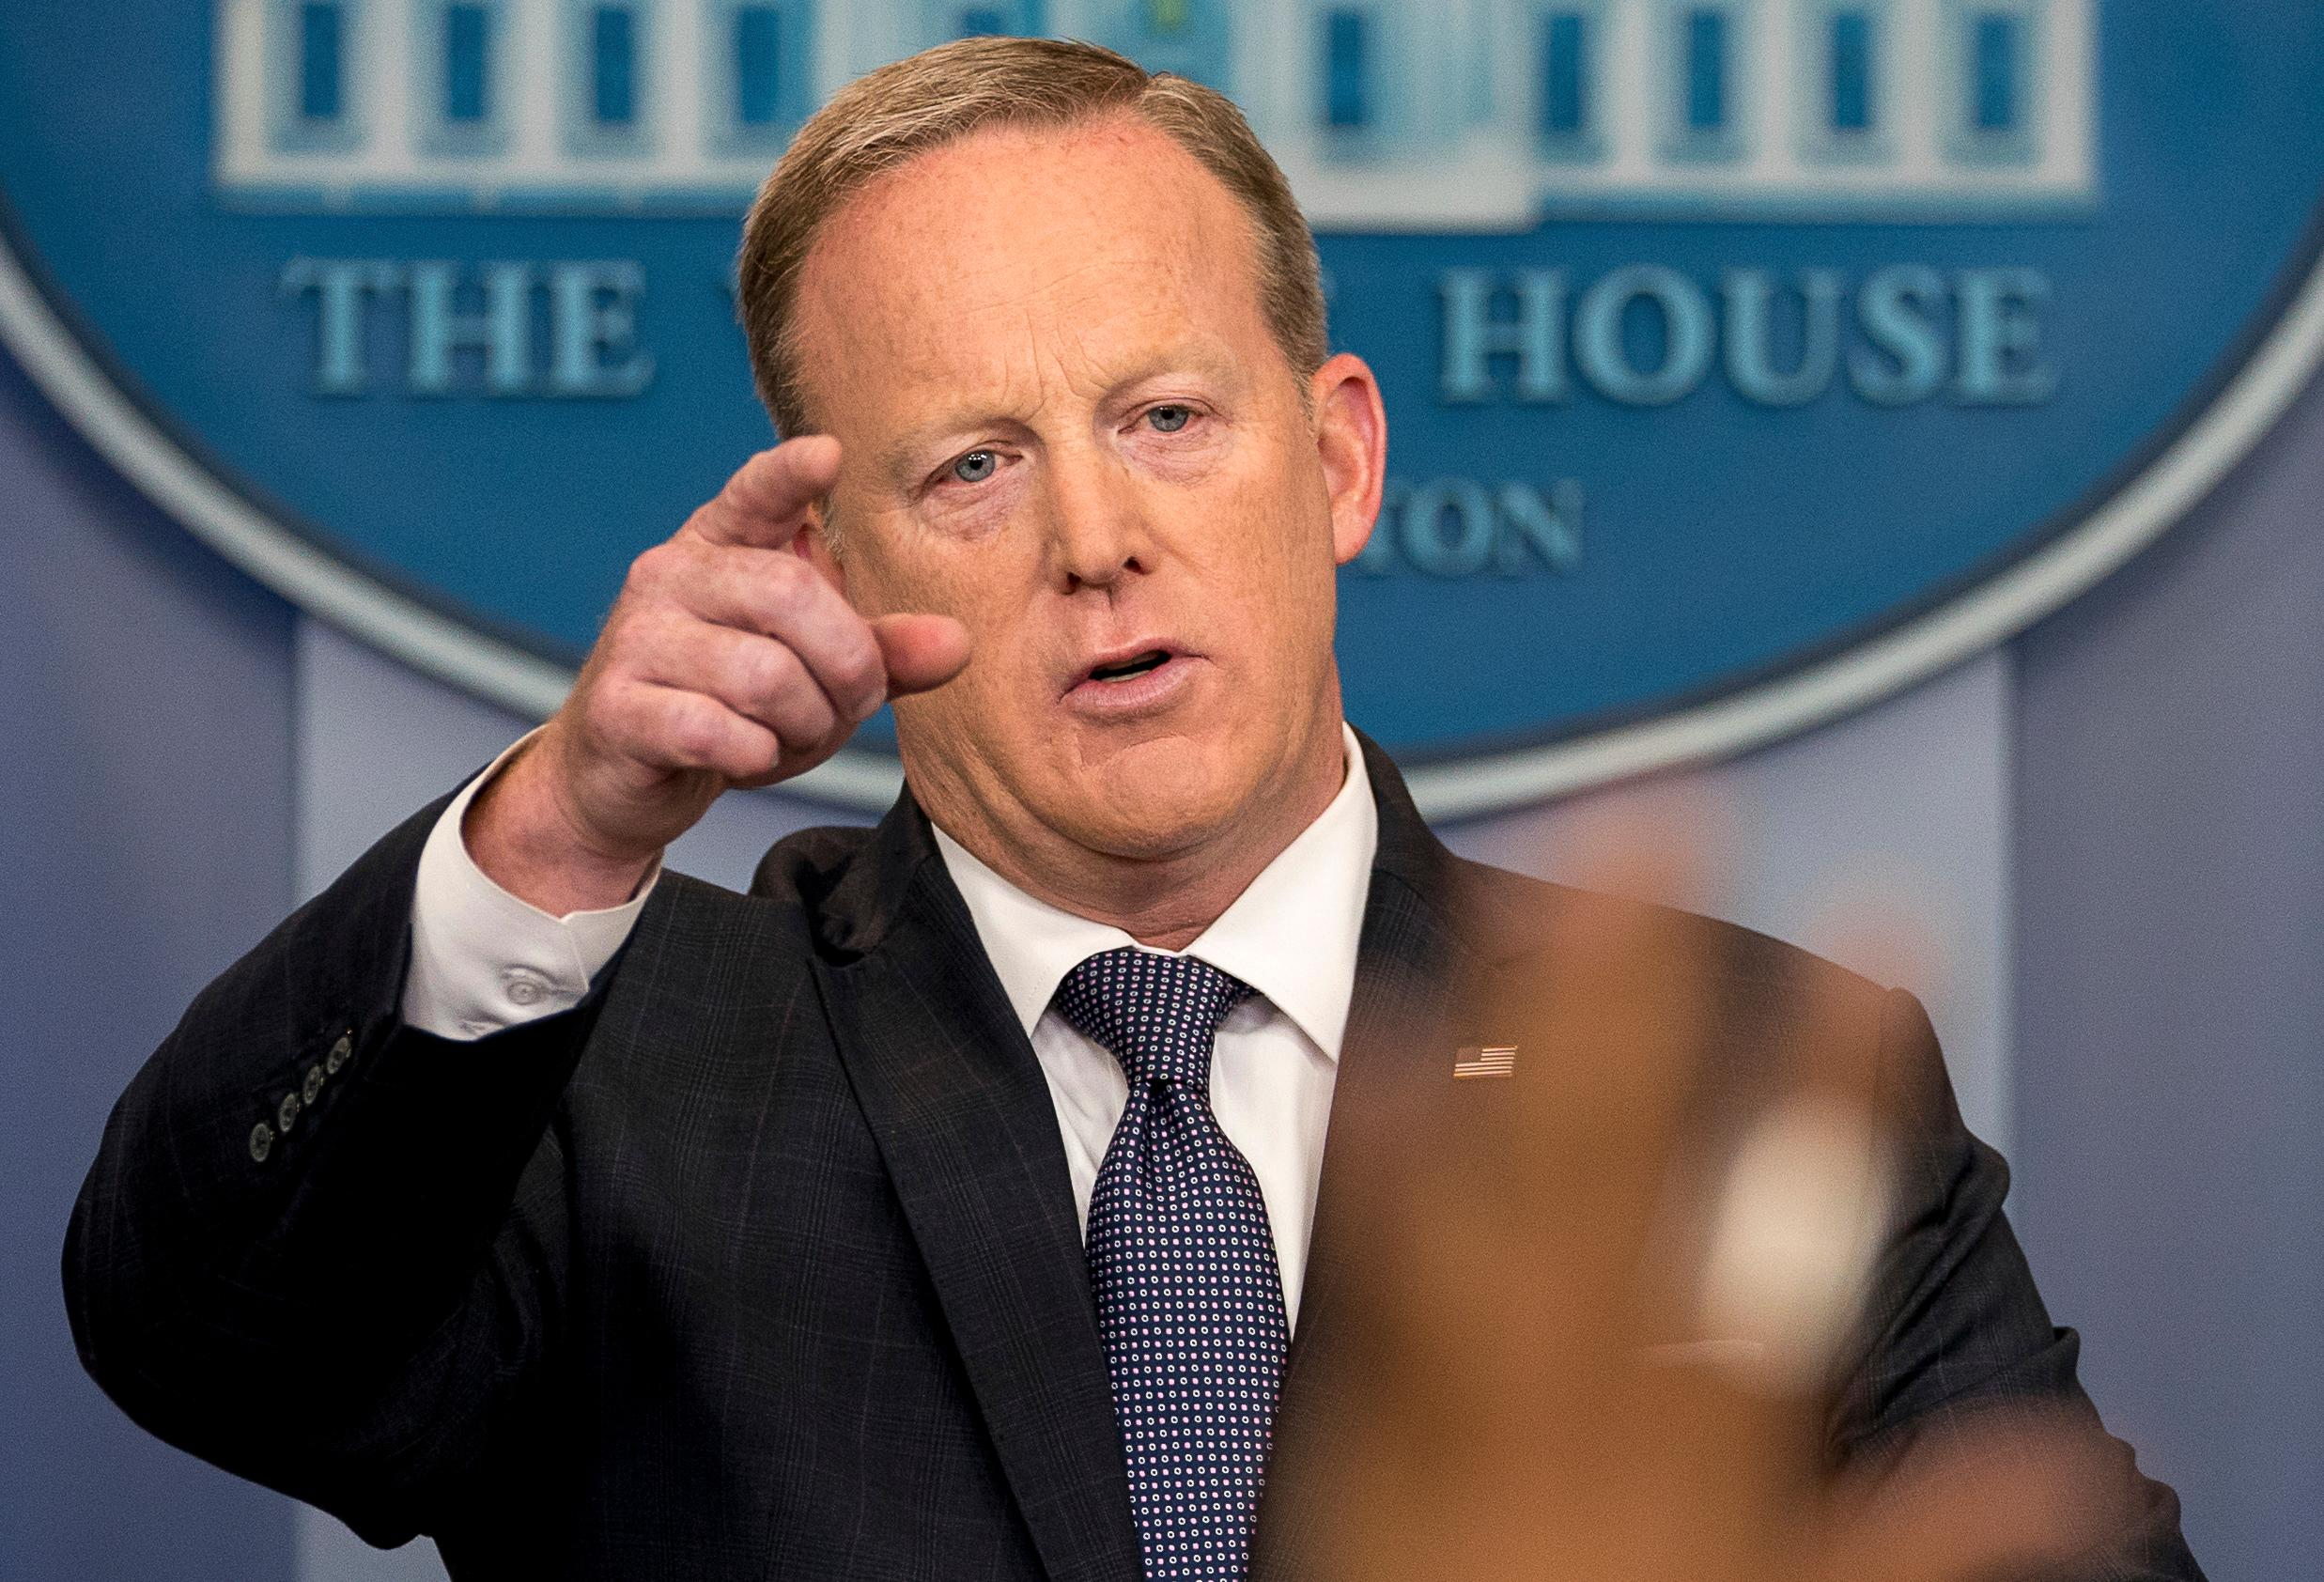 White House press secretary Sean Spicer calls on a member of the media during the daily press briefing at the White House in Washington, Tuesday, May 30, 2017. Spicer discussed ongoing possible connections to Jared Kushner and Russians as well as the president's international trip. (AP Photo/Andrew Harnik)